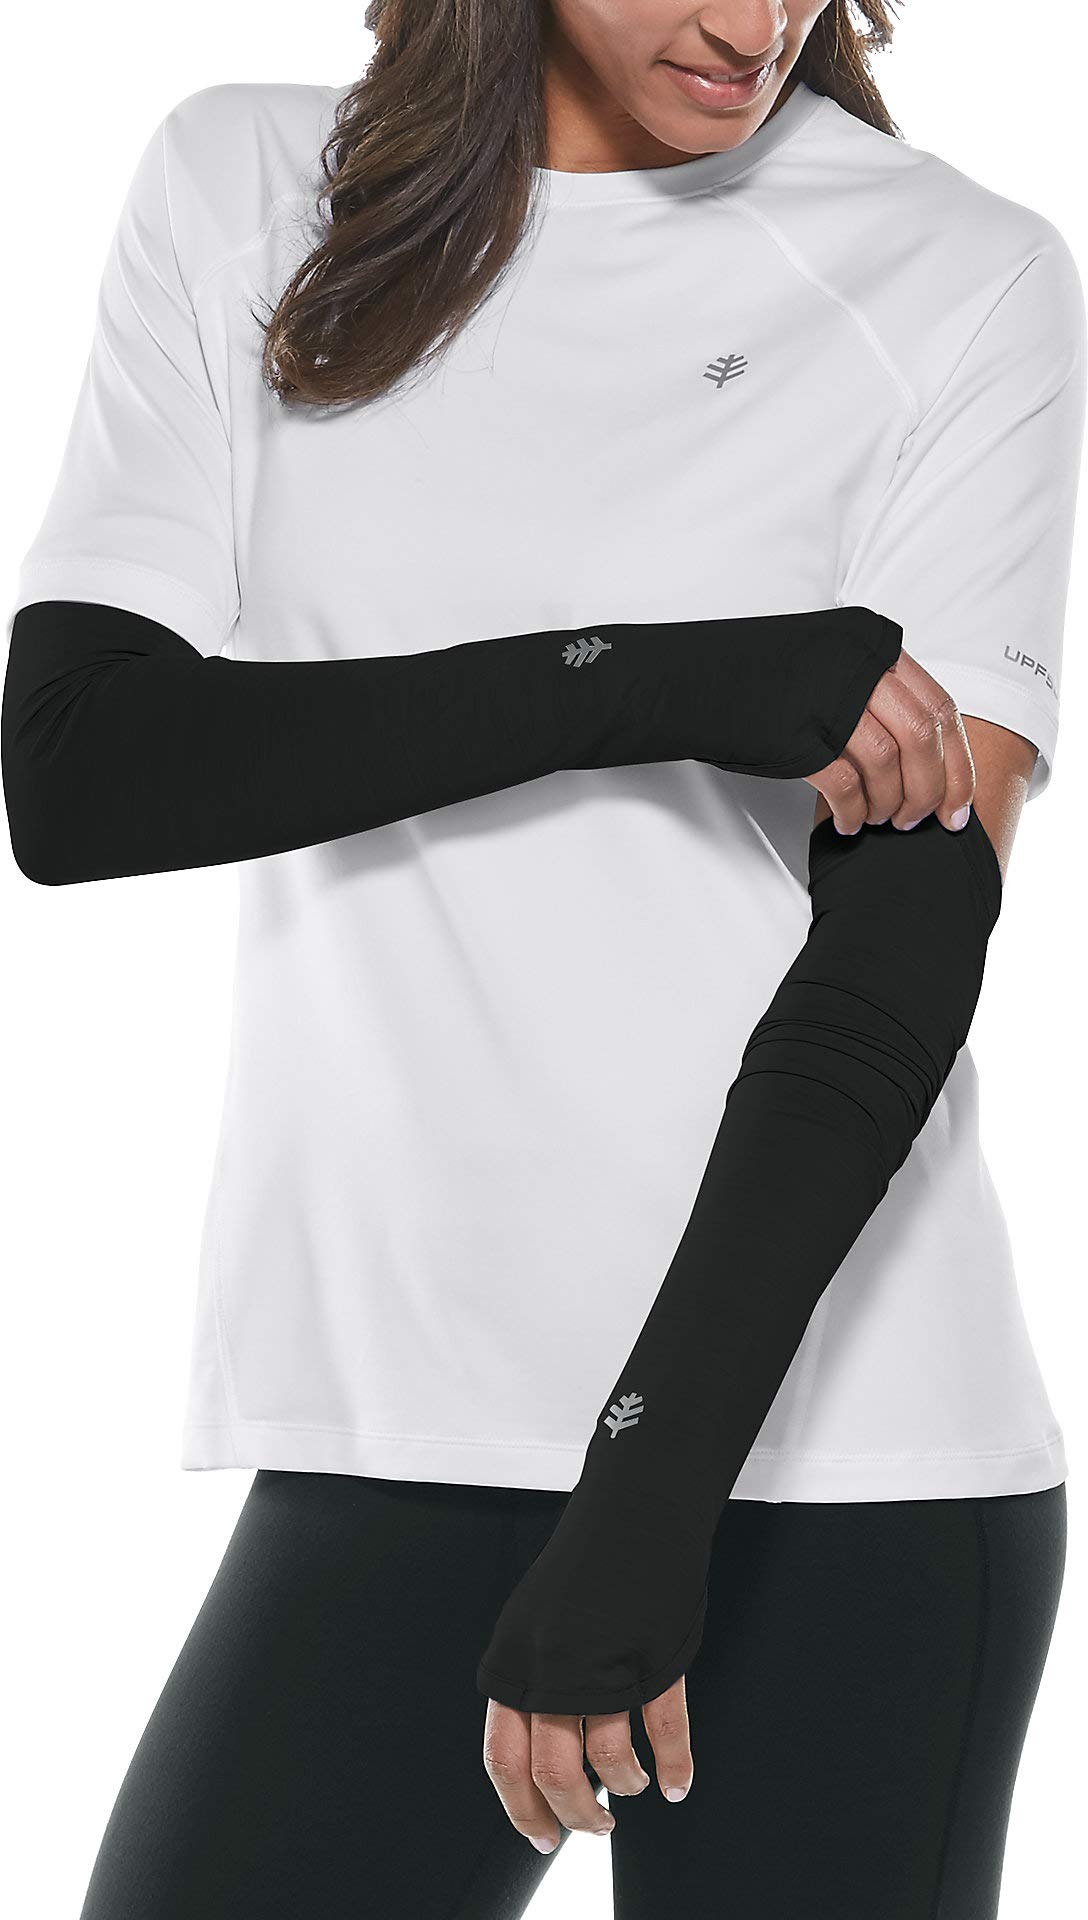 Coolibar UPF 50+ Women's Performance Sleeves - Sun Protective (Large/X-Large- Black) by Coolibar